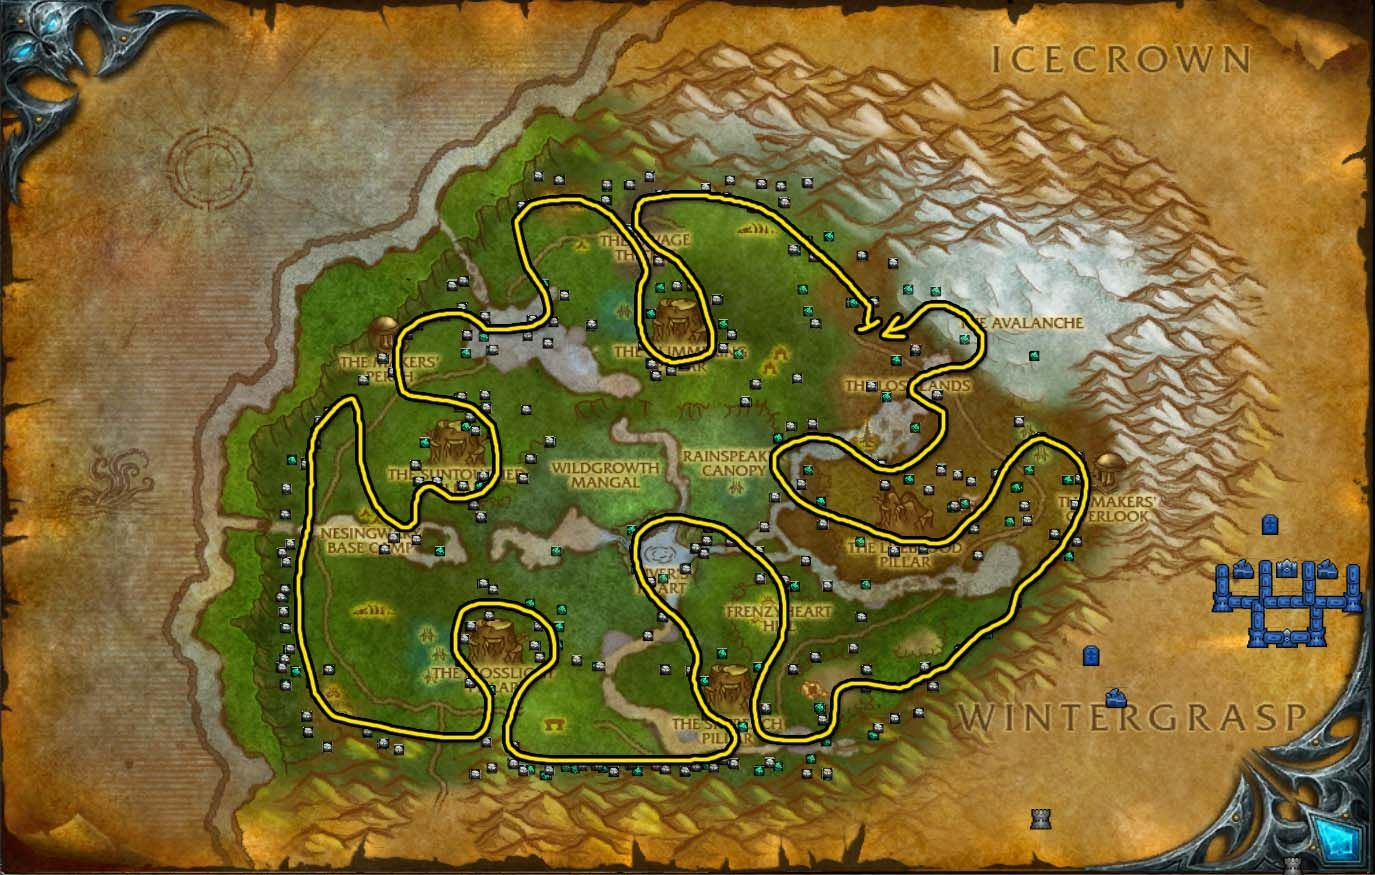 horde leveling guide # http://topwowlevelingguides.com/blog/how-to-choose-a-cataclysm-horde-leveling-guide